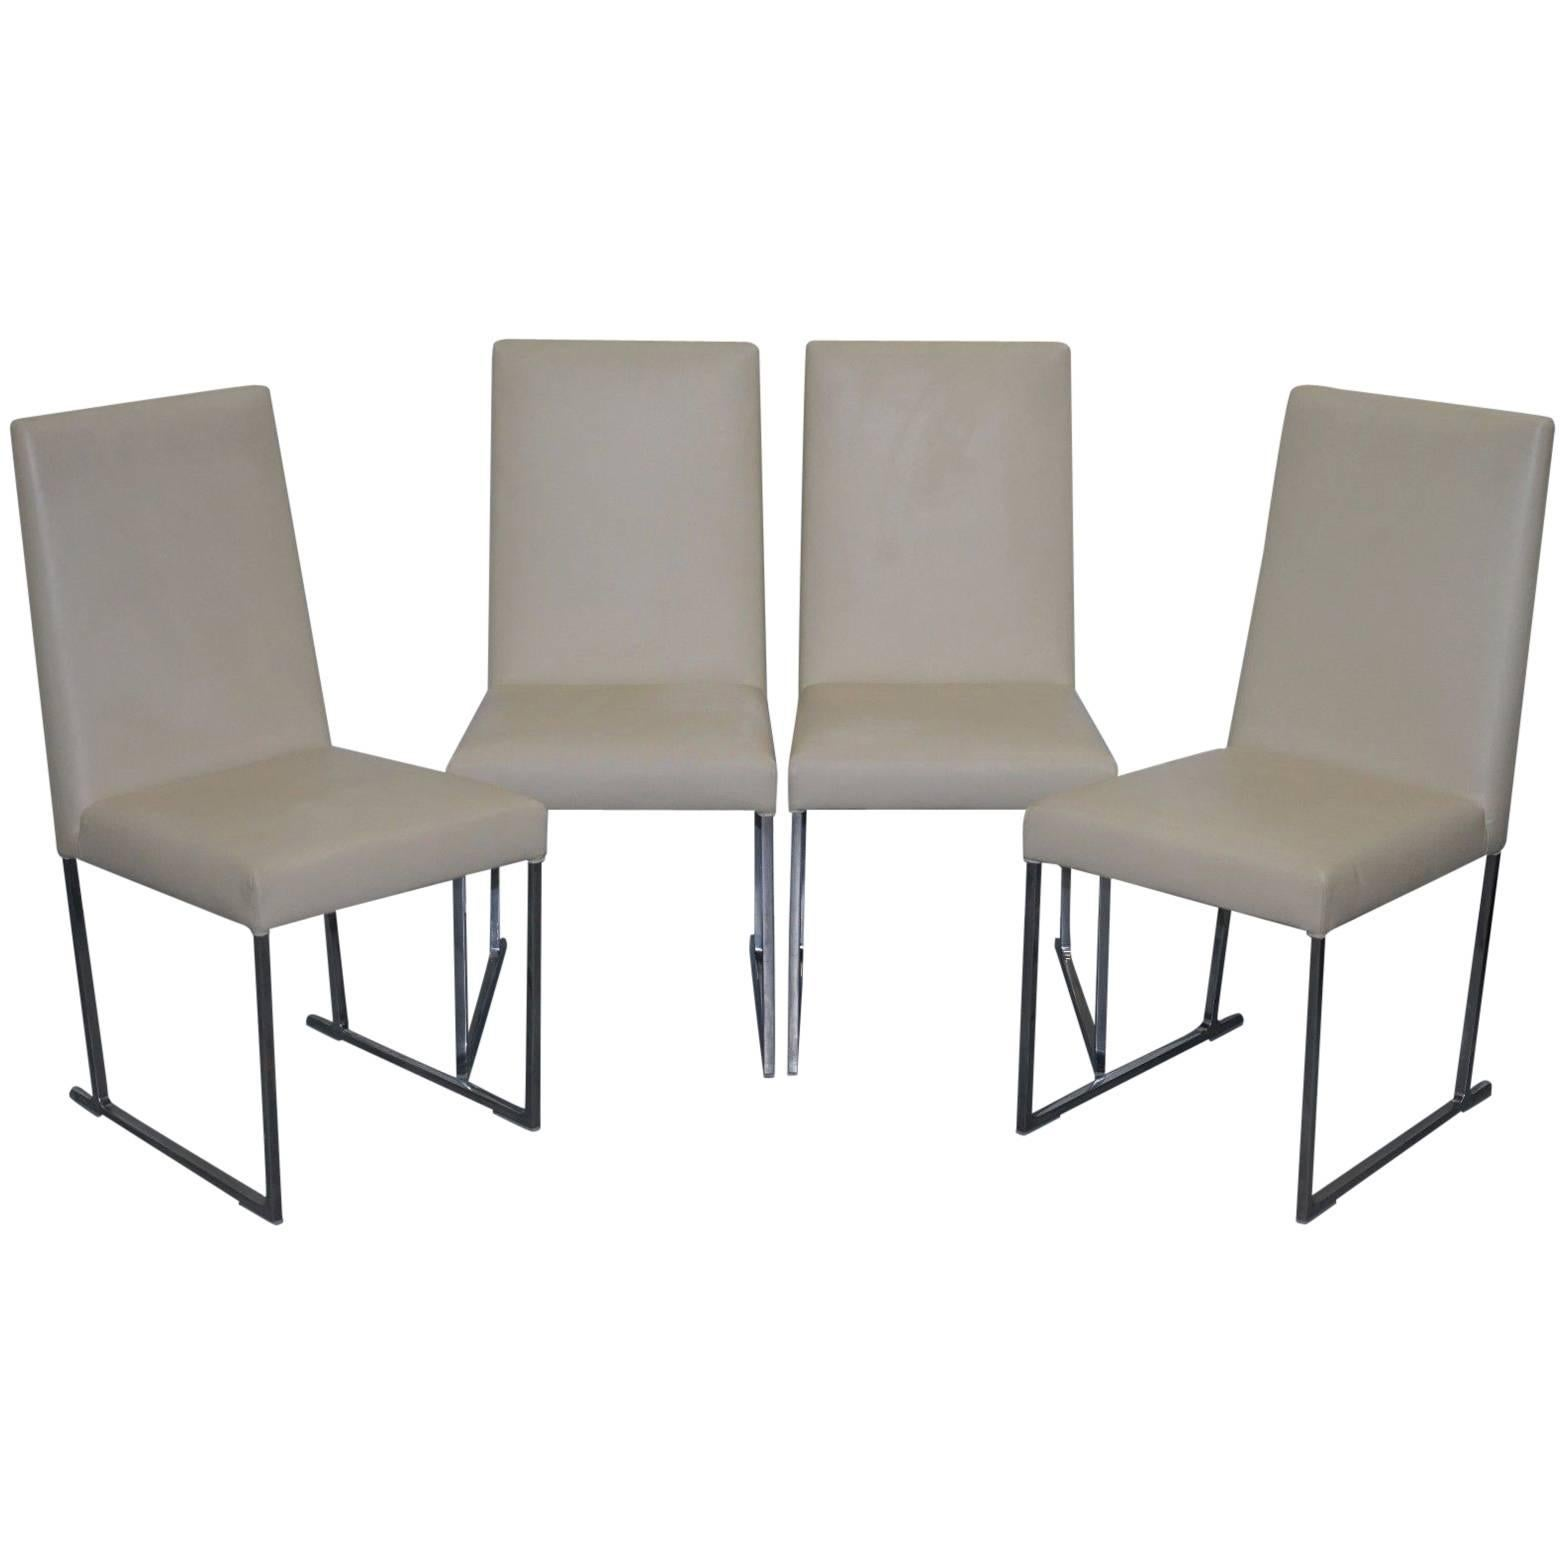 Four Antonio Citterio Bu0026amp;B Italia S47 Solo Dining Chairs Cream Leather